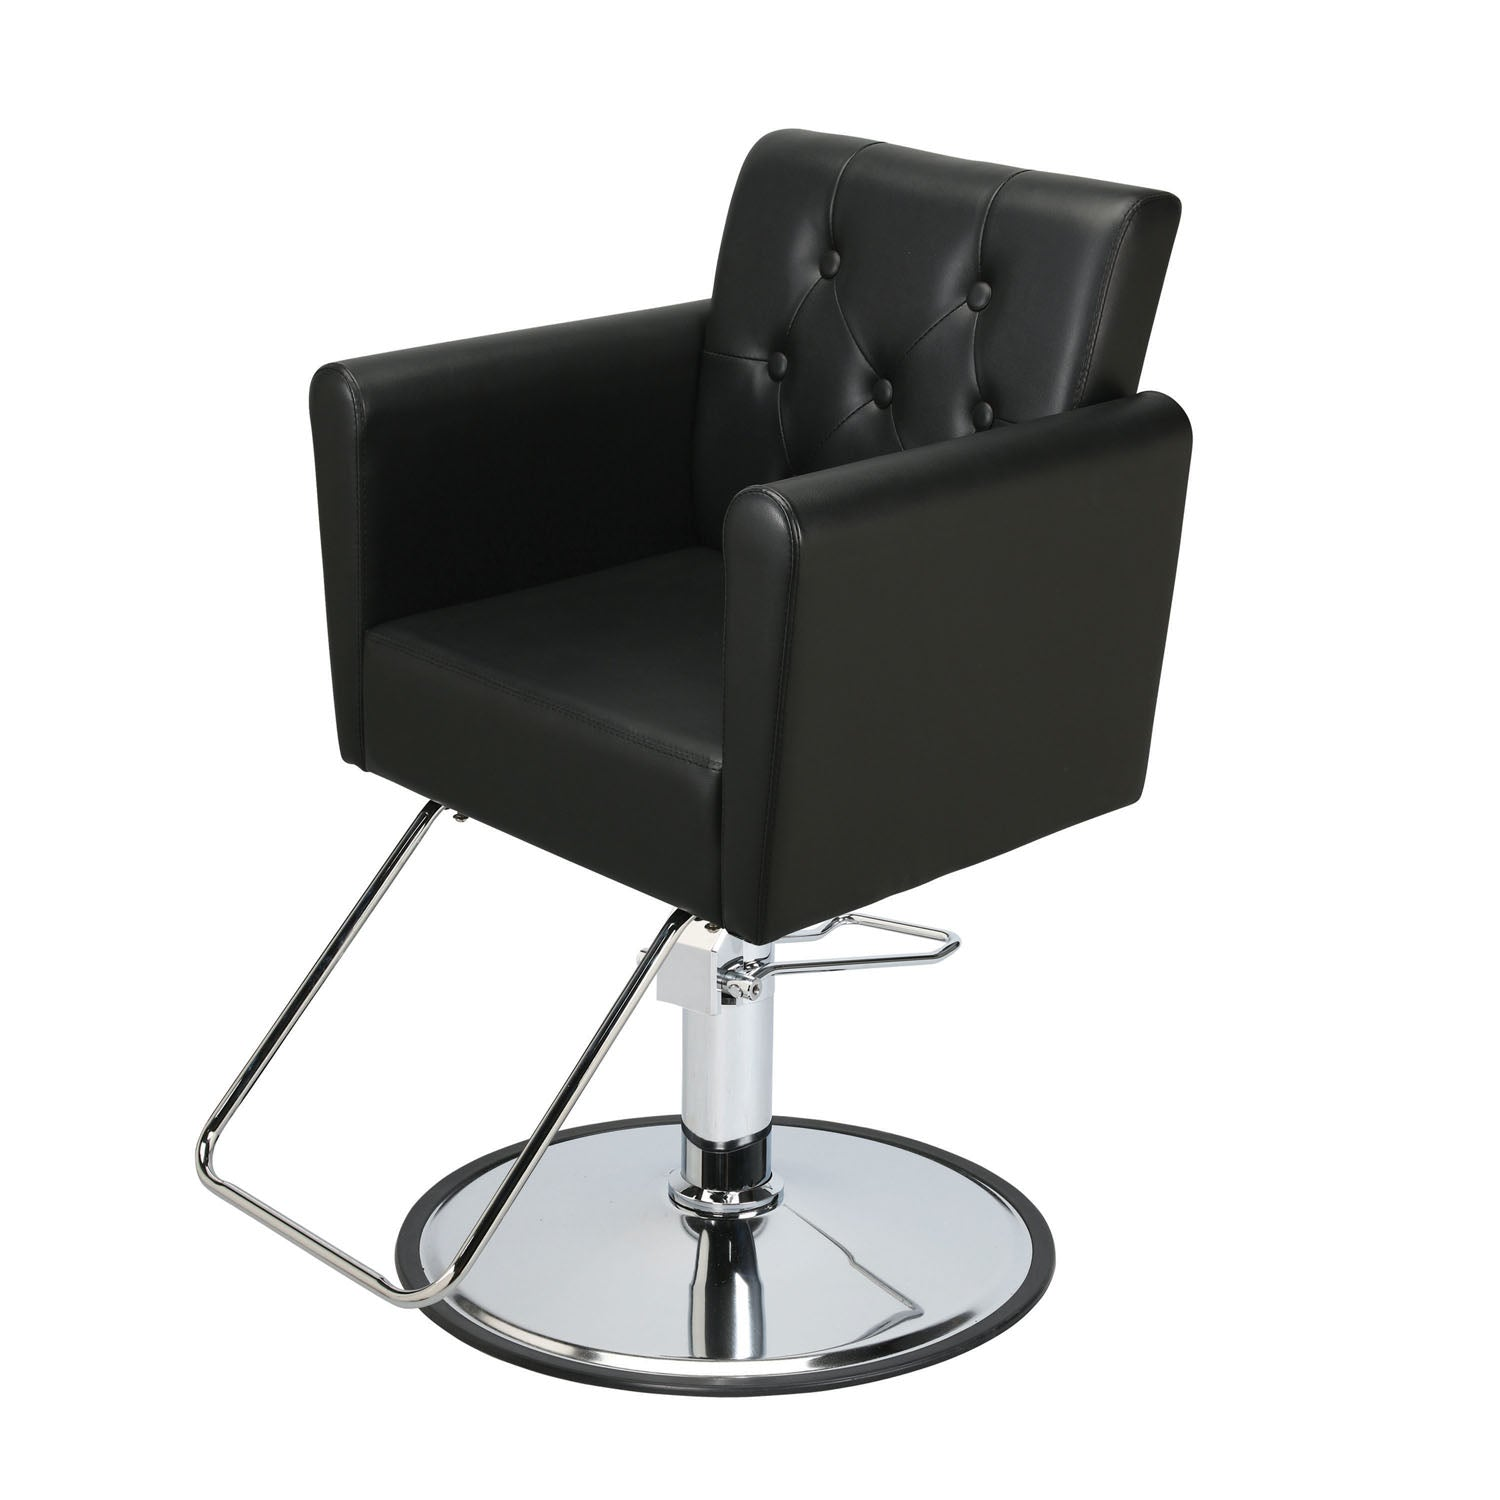 Retto Salon Styling Chair, Custom Color